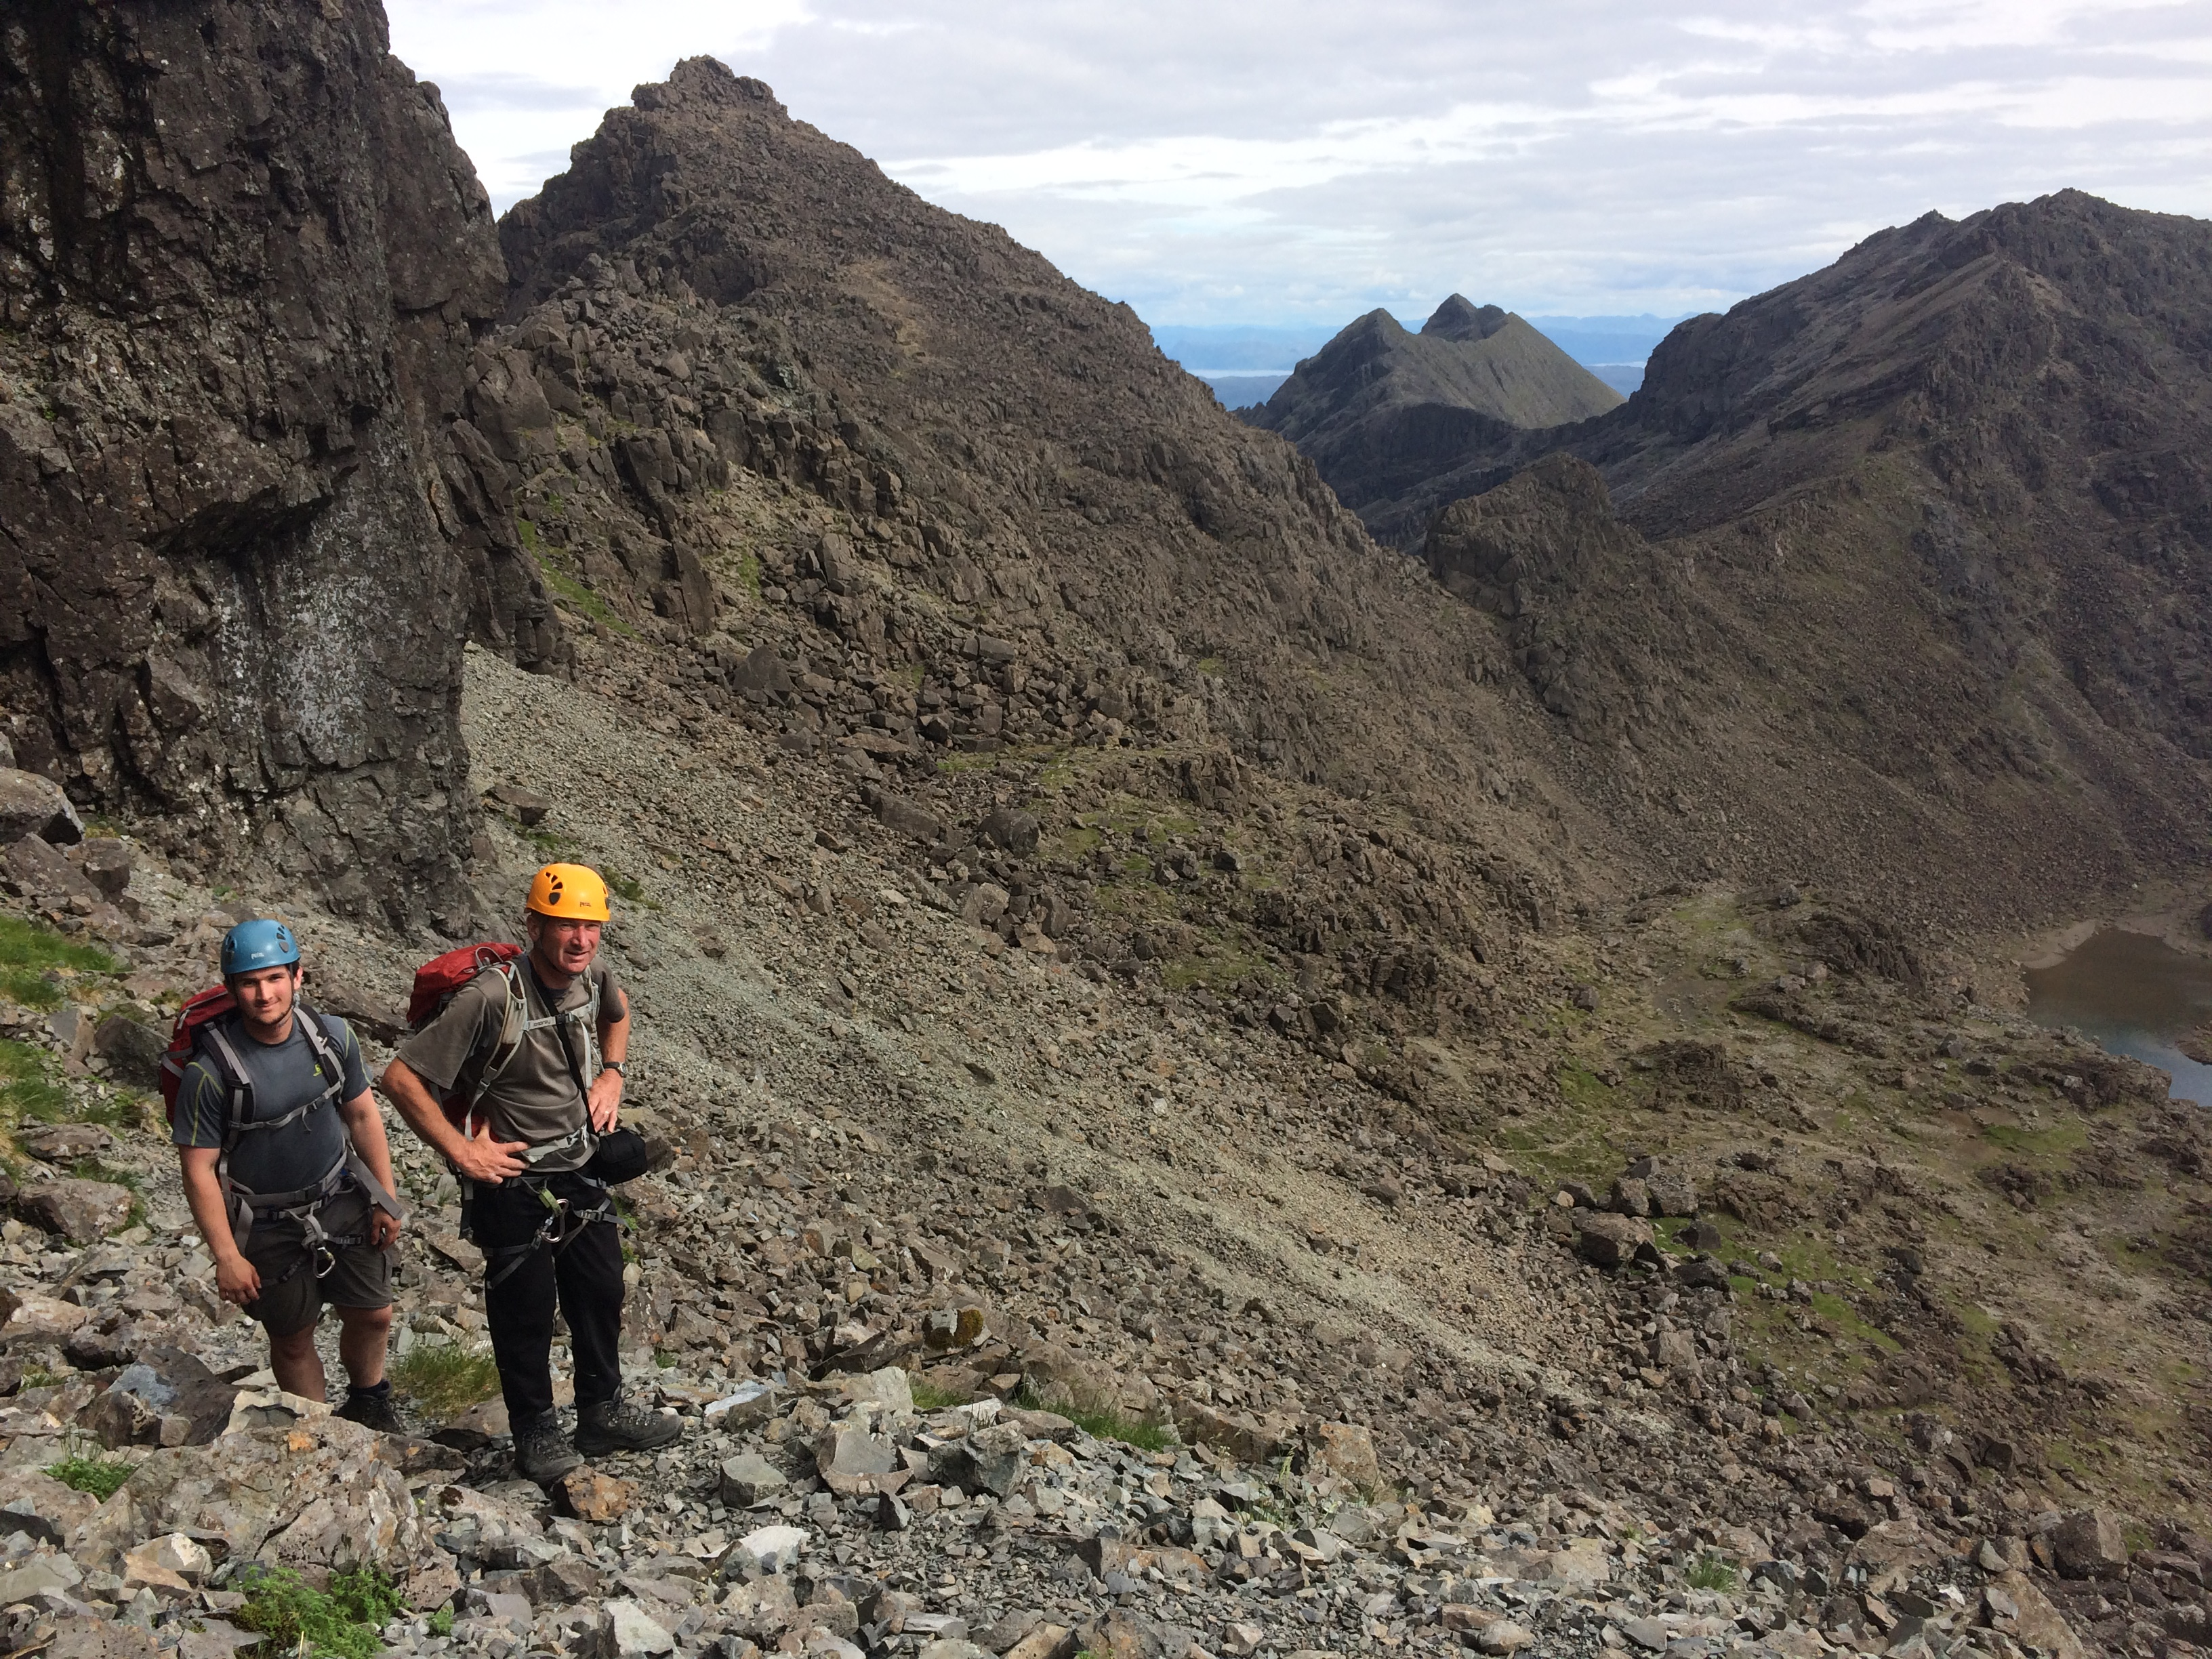 Complete the Skye Cuillin Munros with Lochaber Guides. Hire a qualified and experienced Cuillin Munros Guide to tackle the Skye Cuillin Munros.